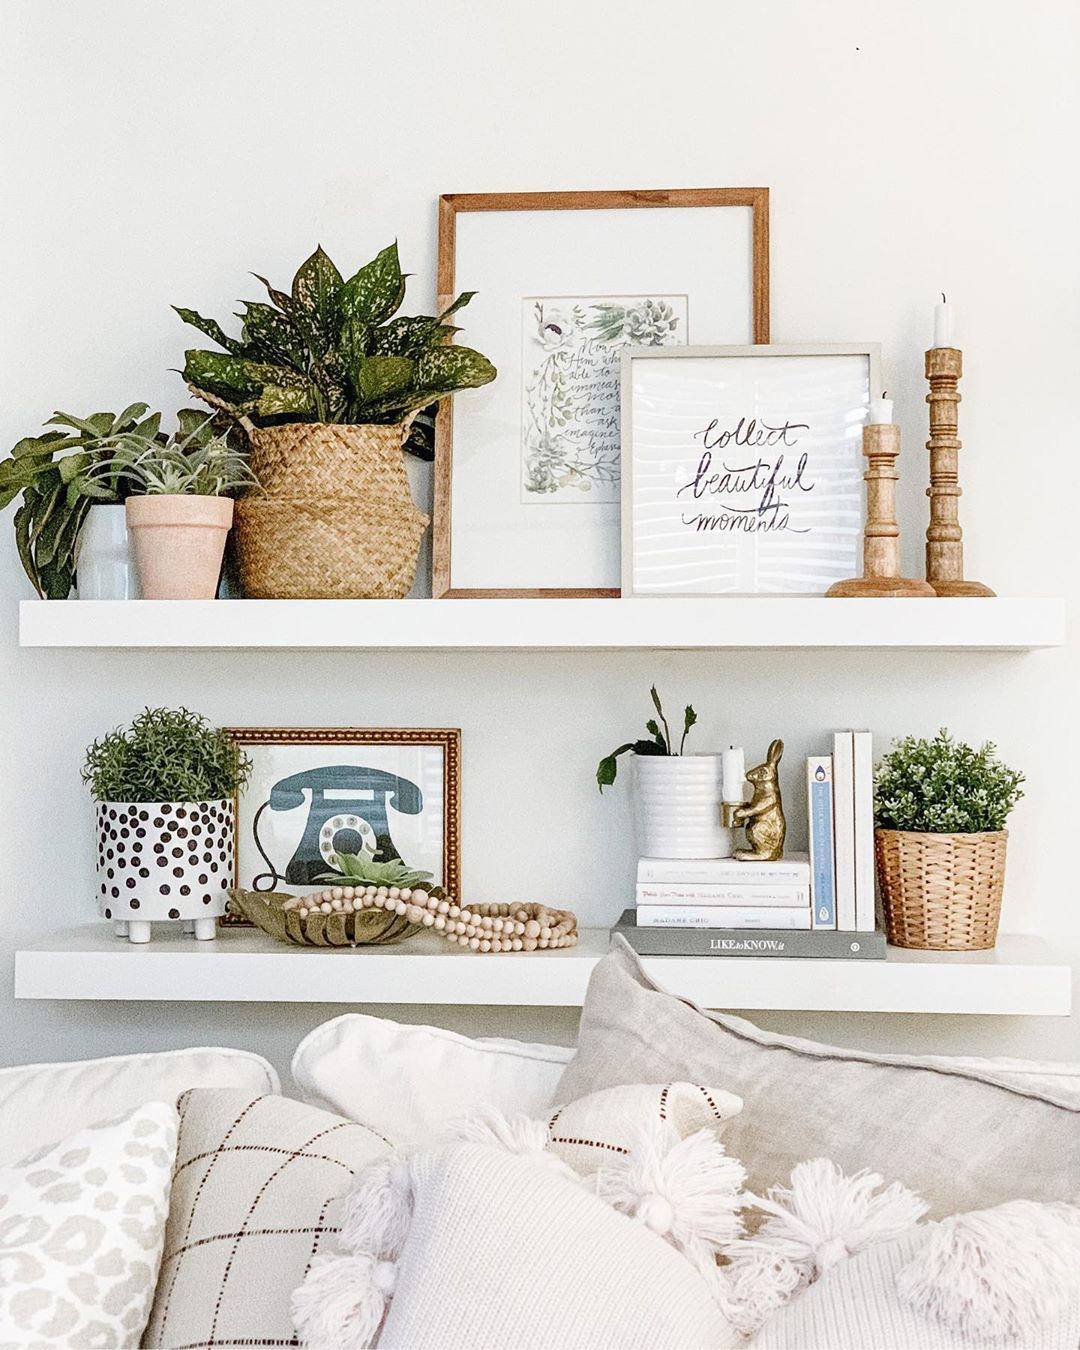 Brittany Jade Robertson On Instagram Christmas Decor Is Down And Regular Decor I In 2020 With Images Living Room Shelves Shelf Decor Living Room Shelf Decor Bedroom